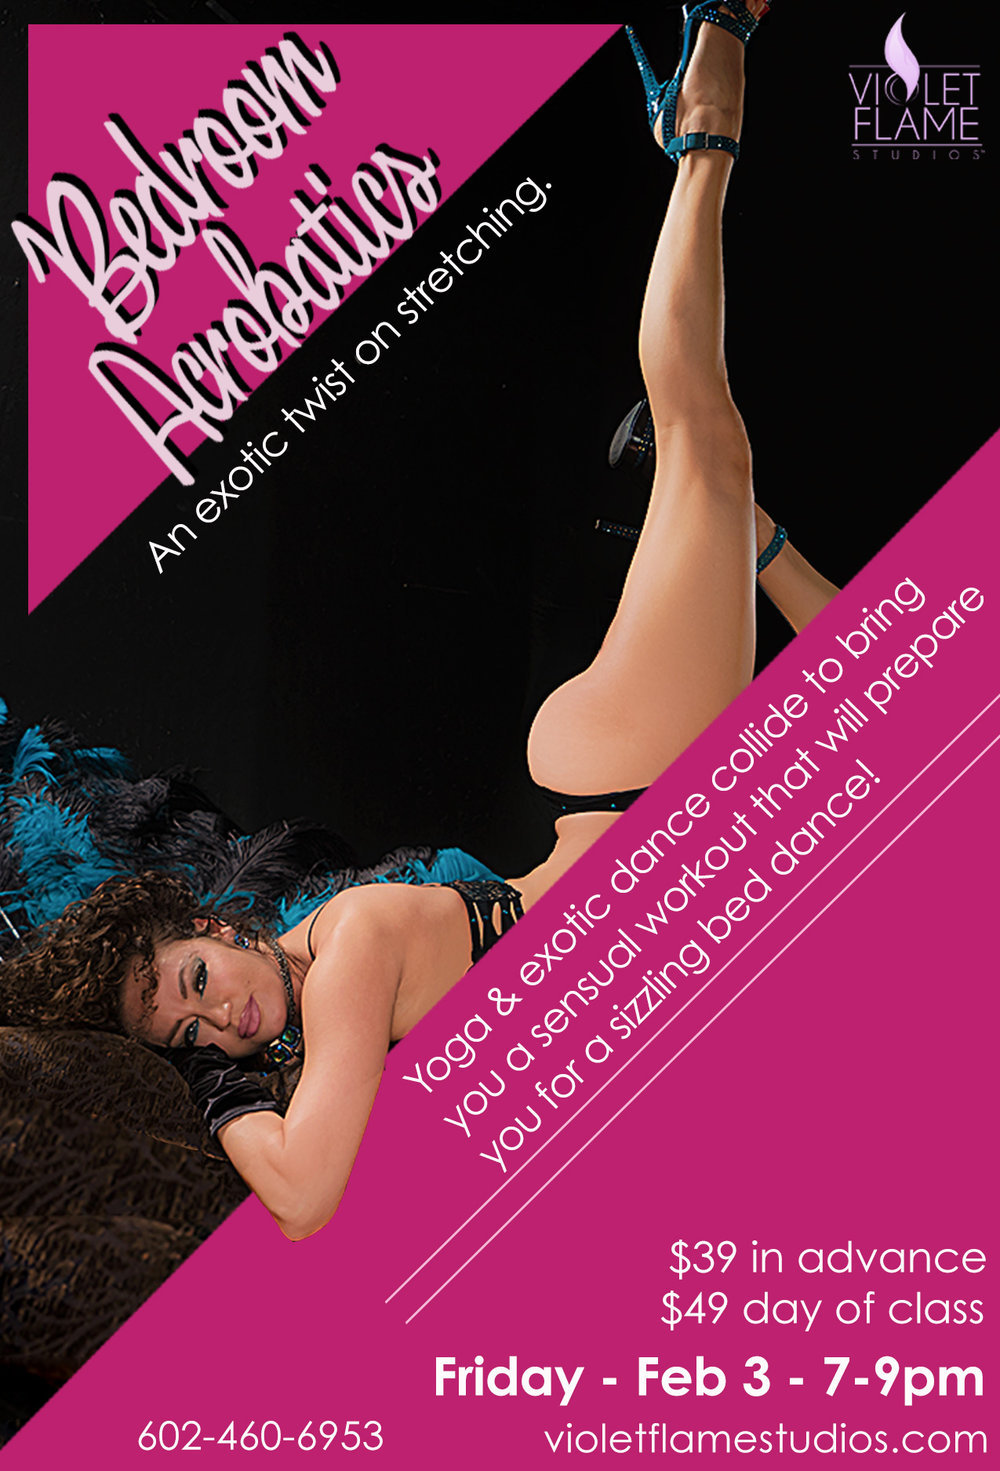 Learn bed dance, bedroom acrobatics, lap dance, strip-tease for your lover on Valentine's Day!